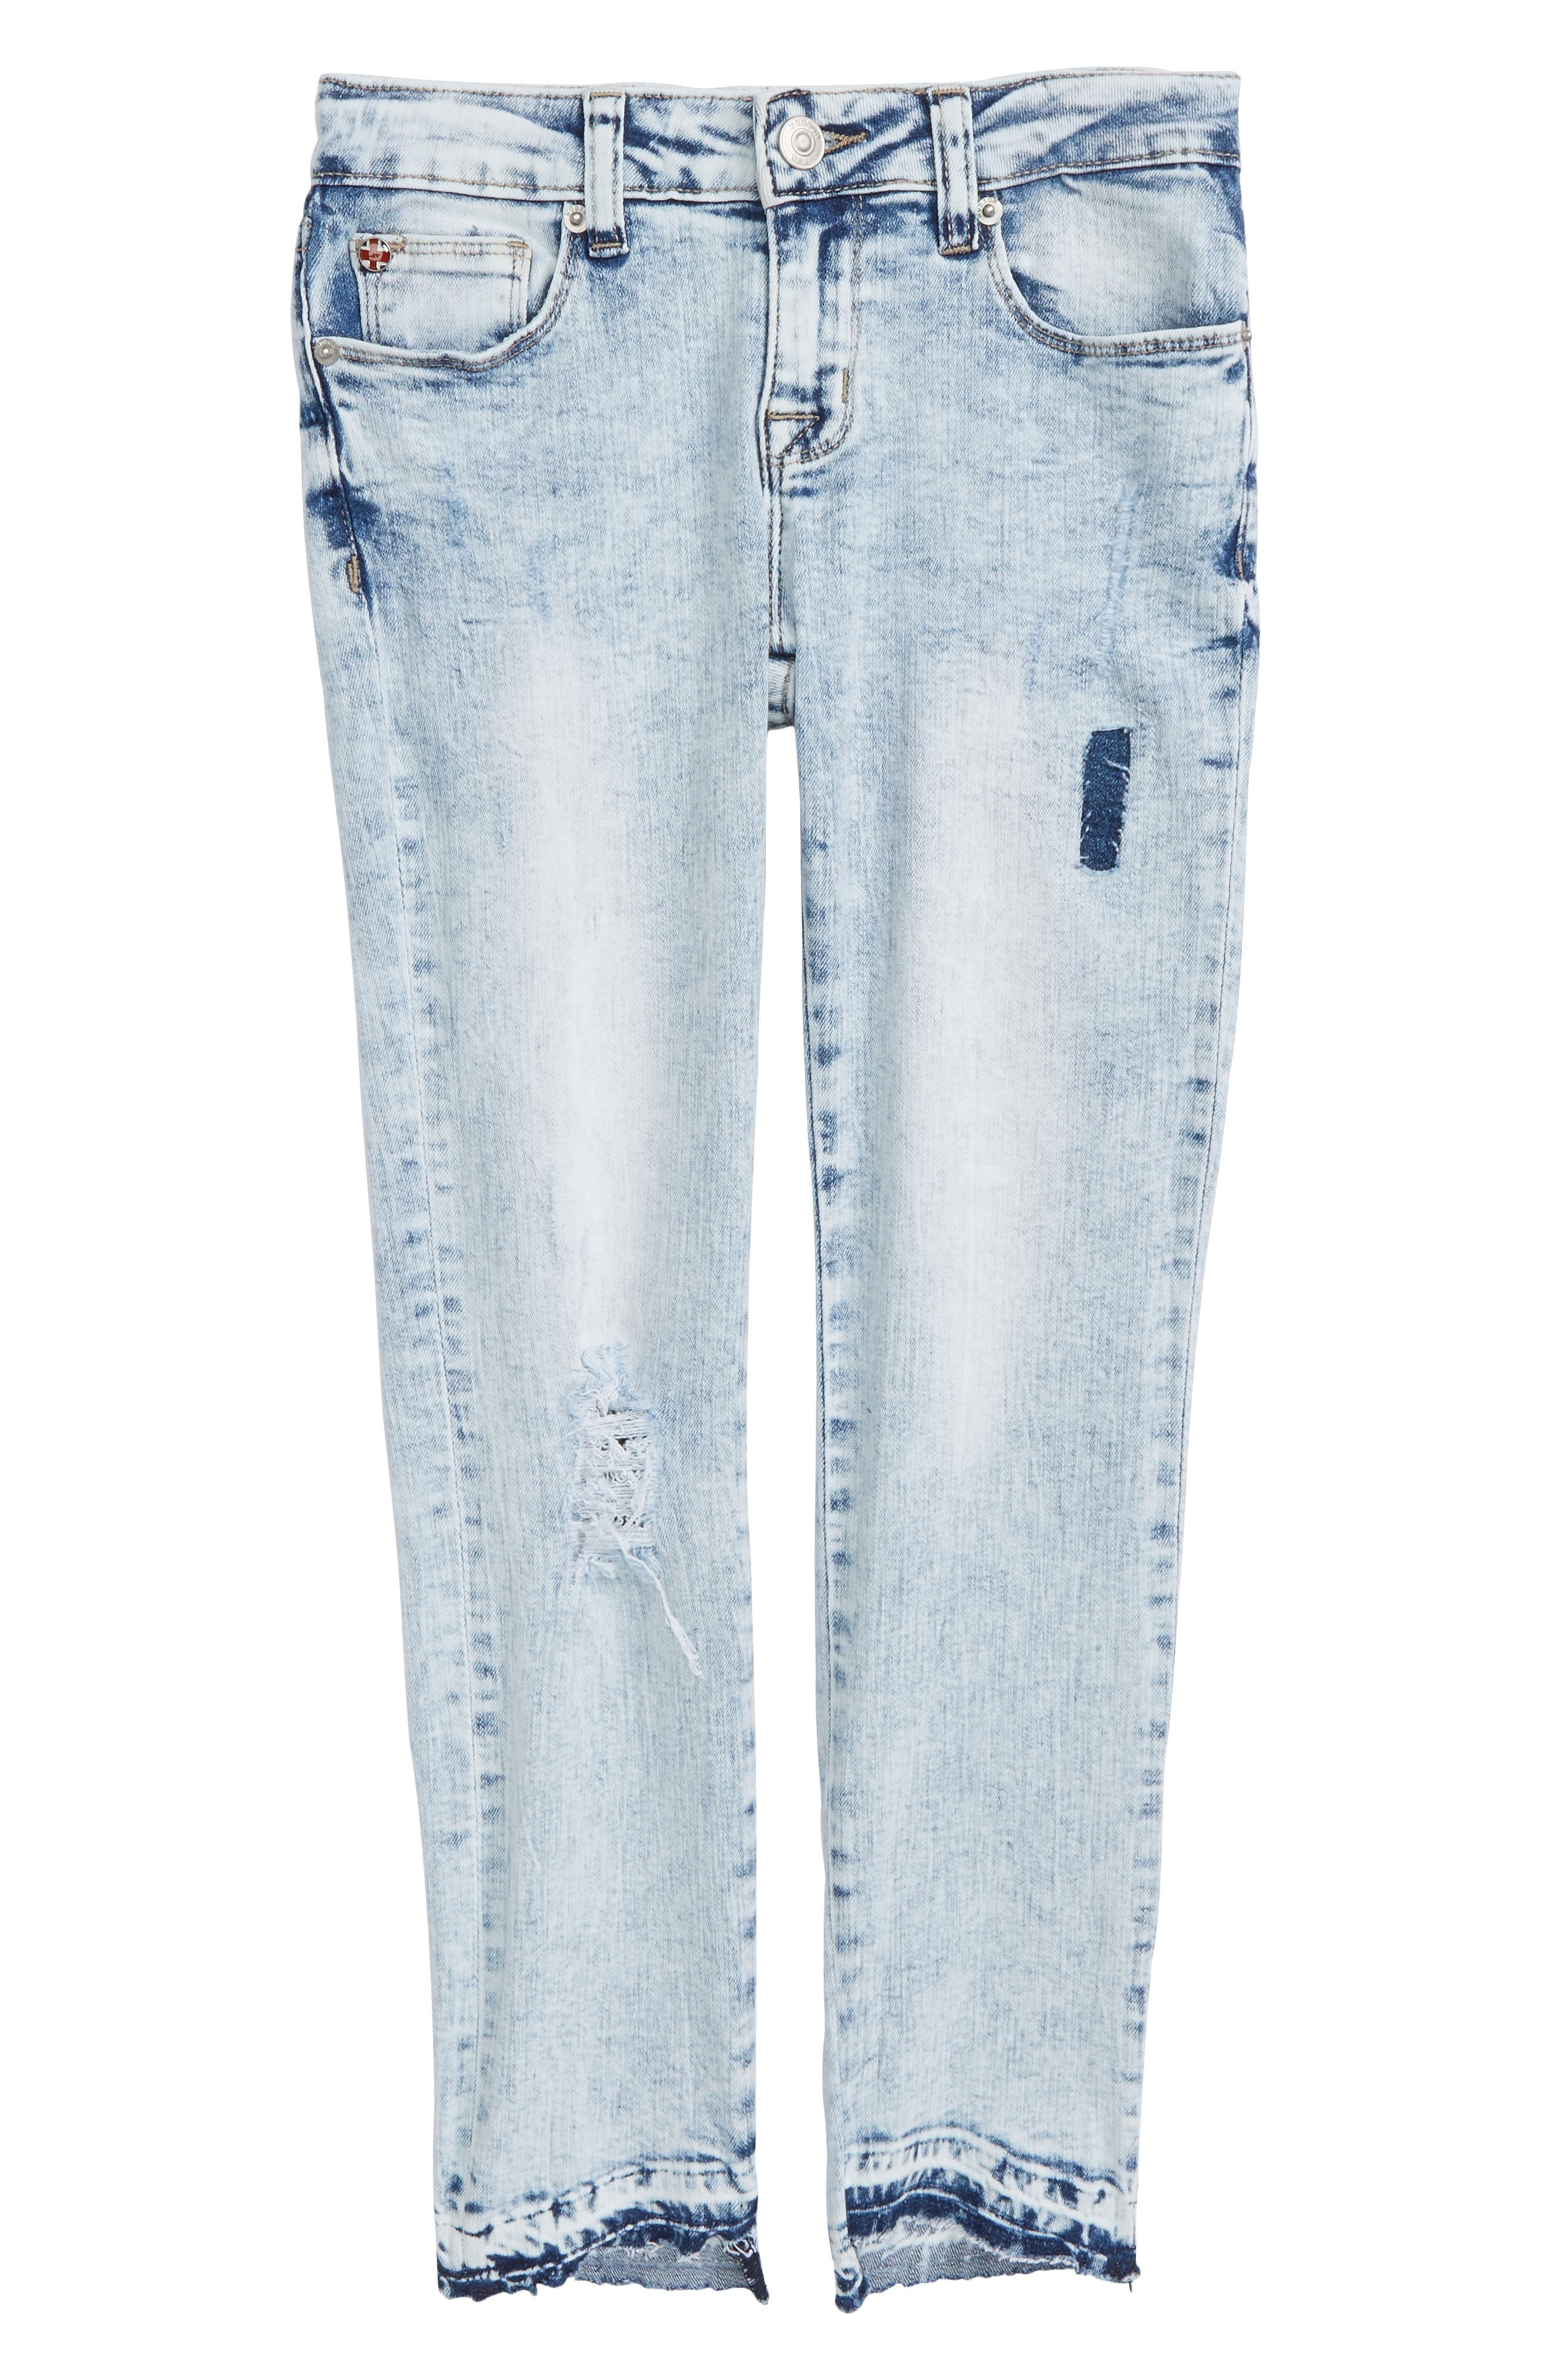 Vicky Crop Skinny Jeans,                             Main thumbnail 1, color,                             400